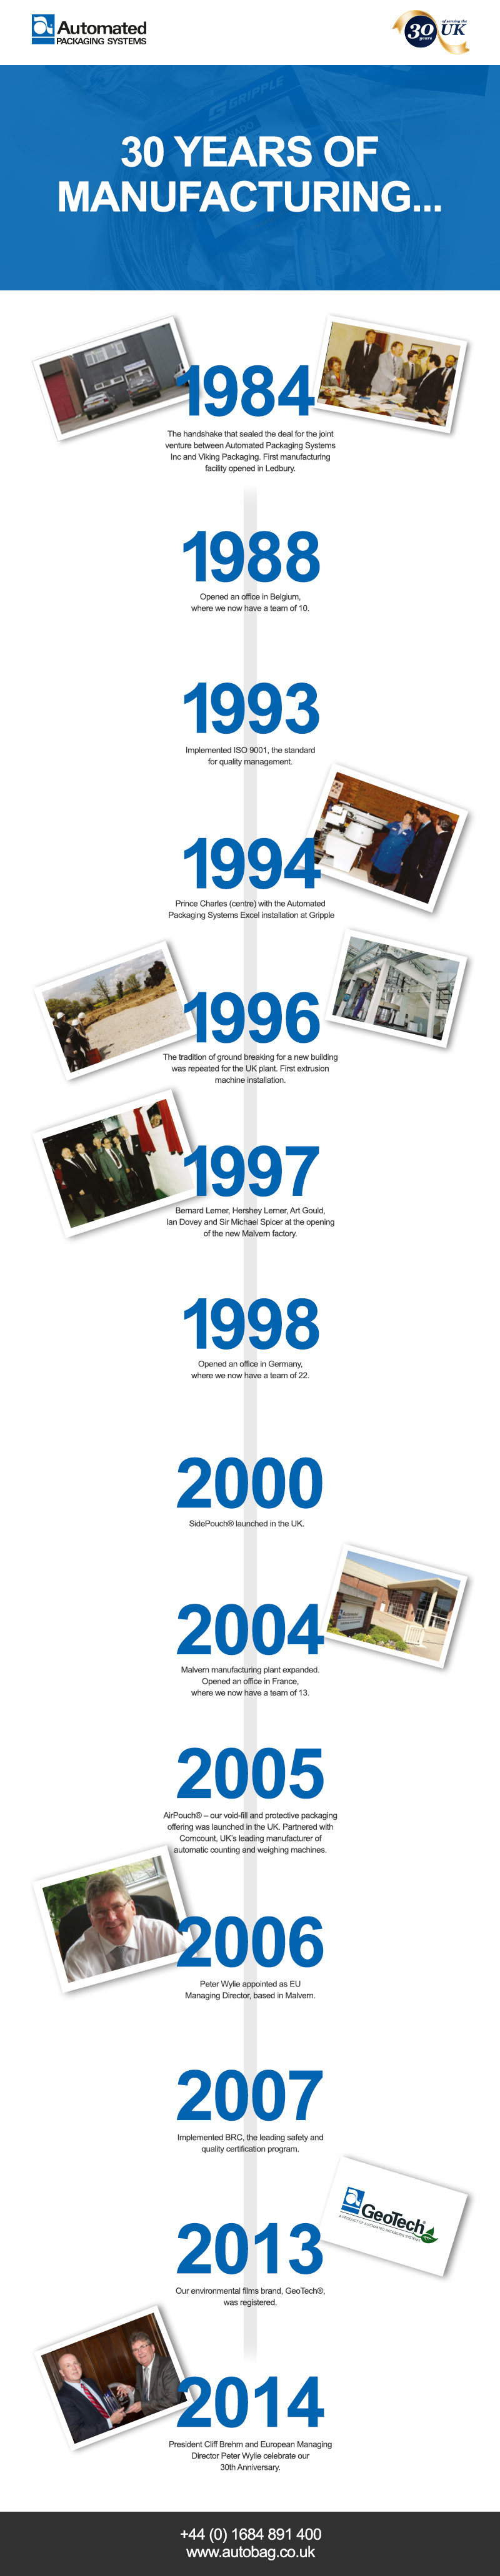 30 Year Timeline of Automated Packaging Systems